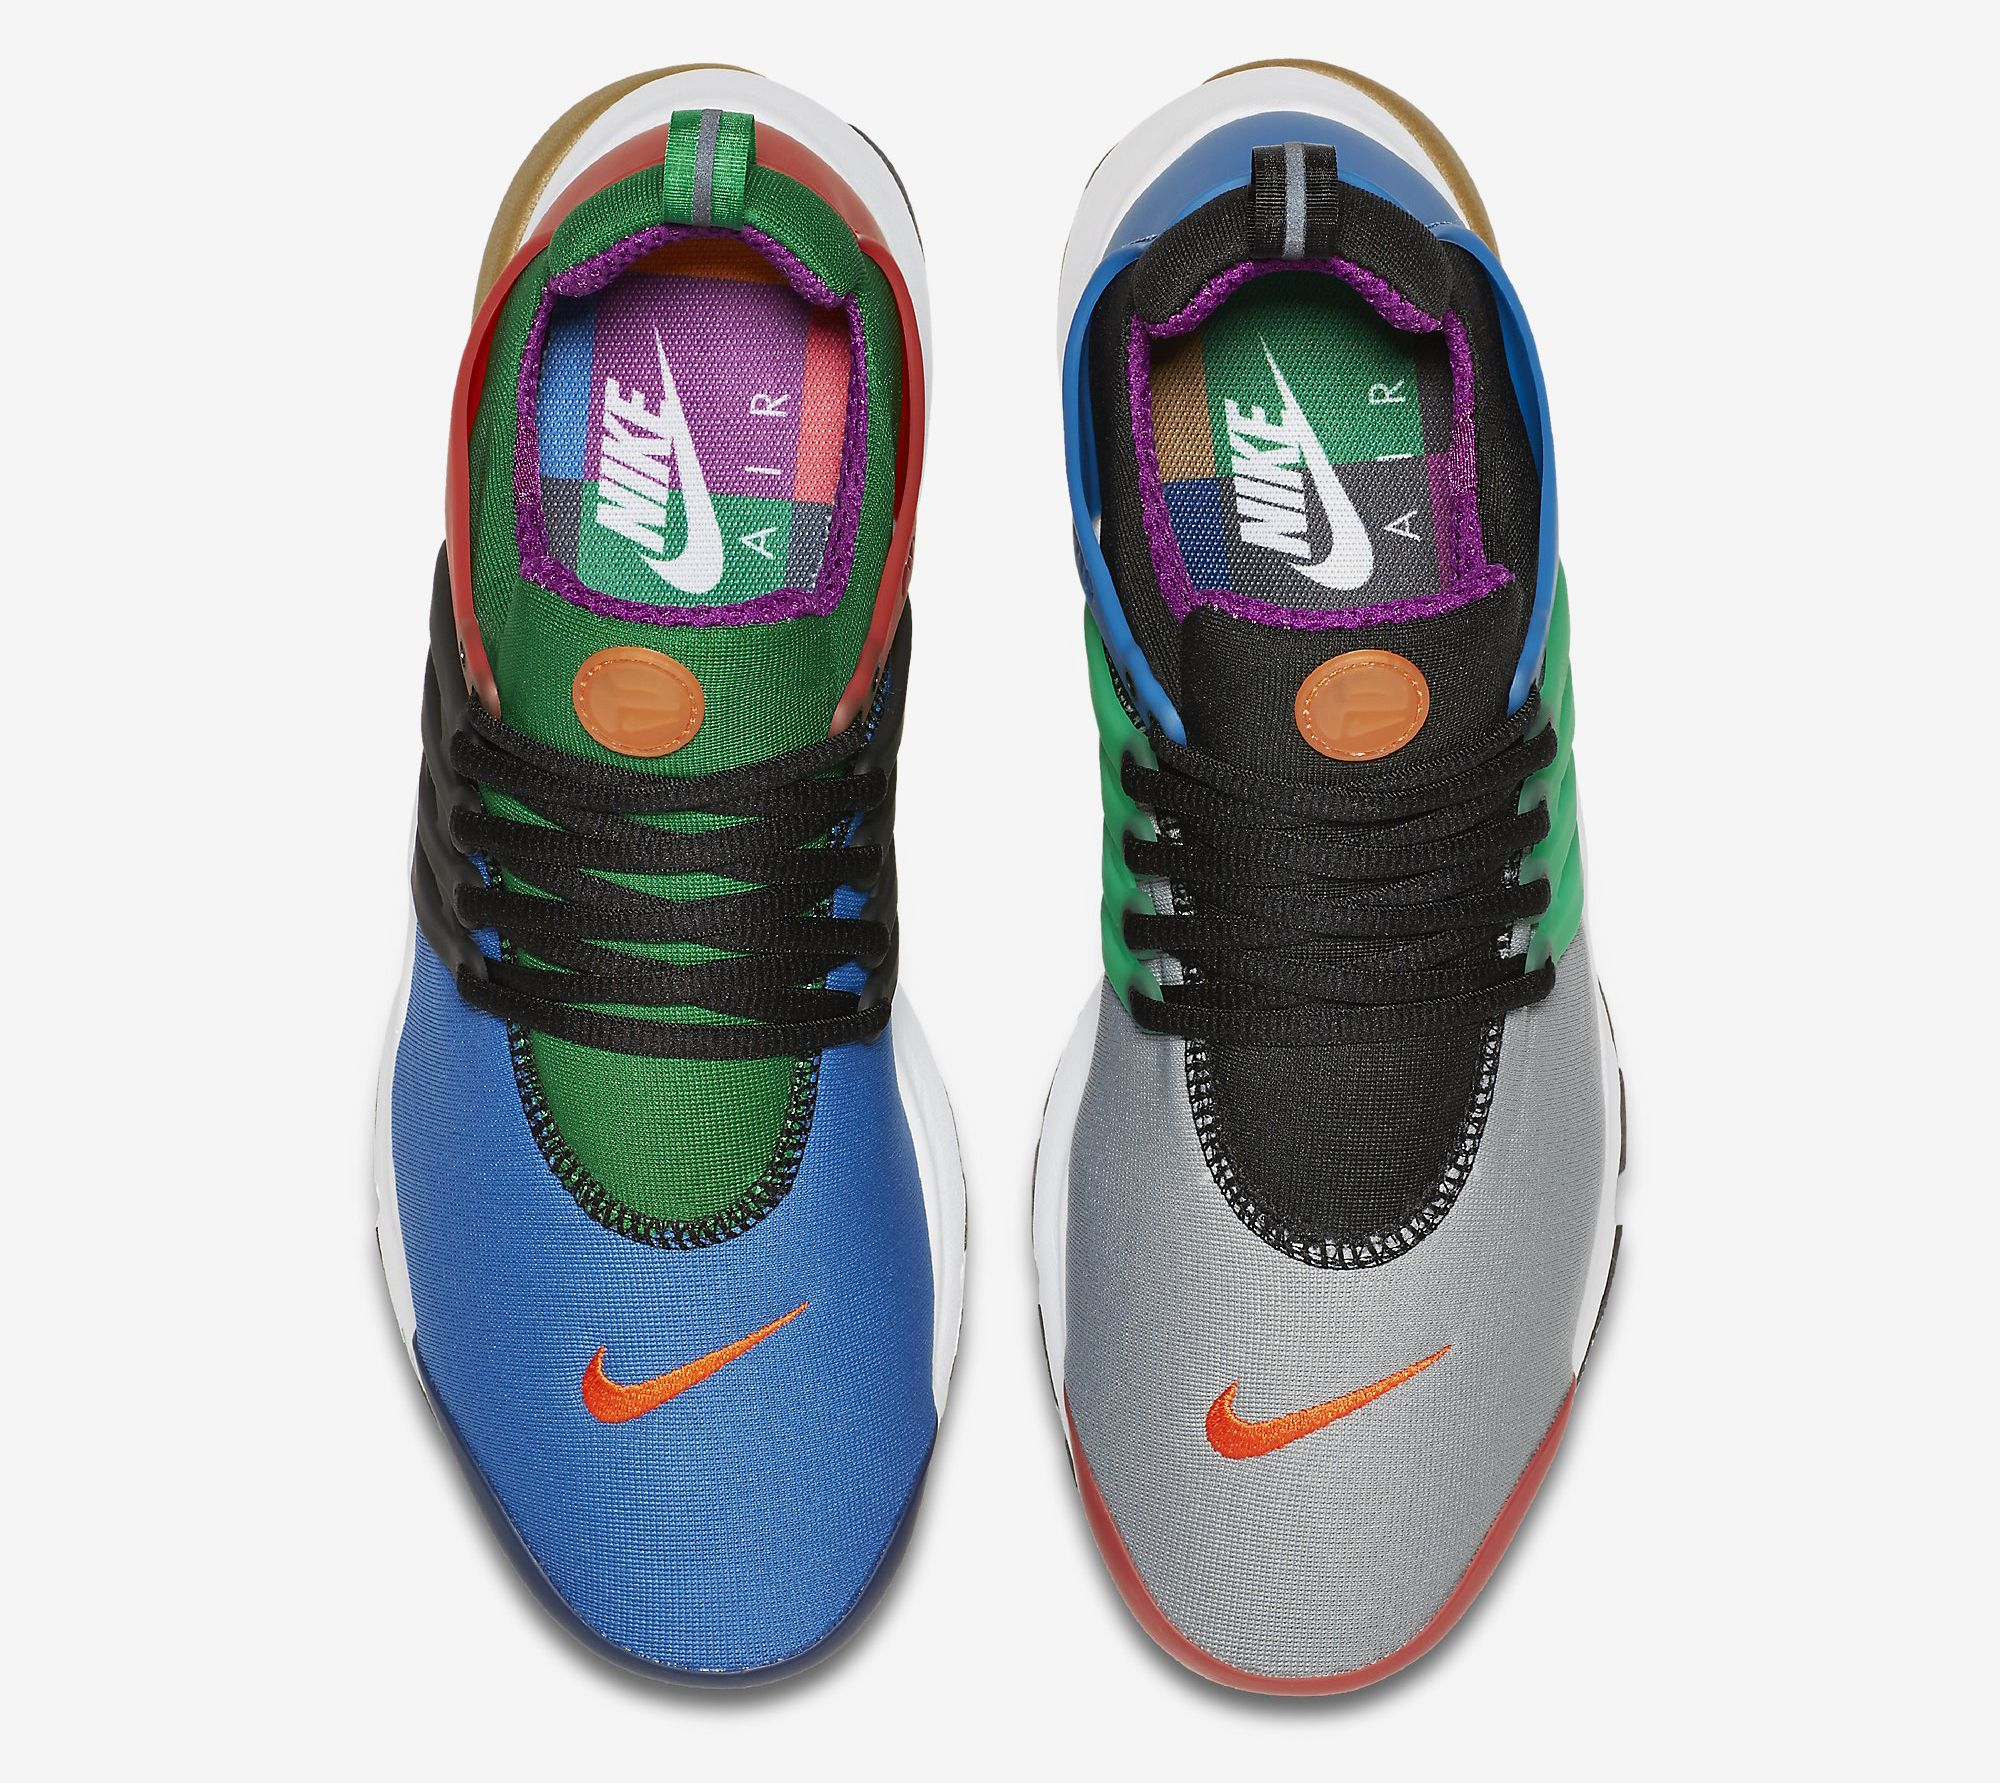 huge selection of 8a923 3456d Greedy Nike Air Presto 886043-400 Top